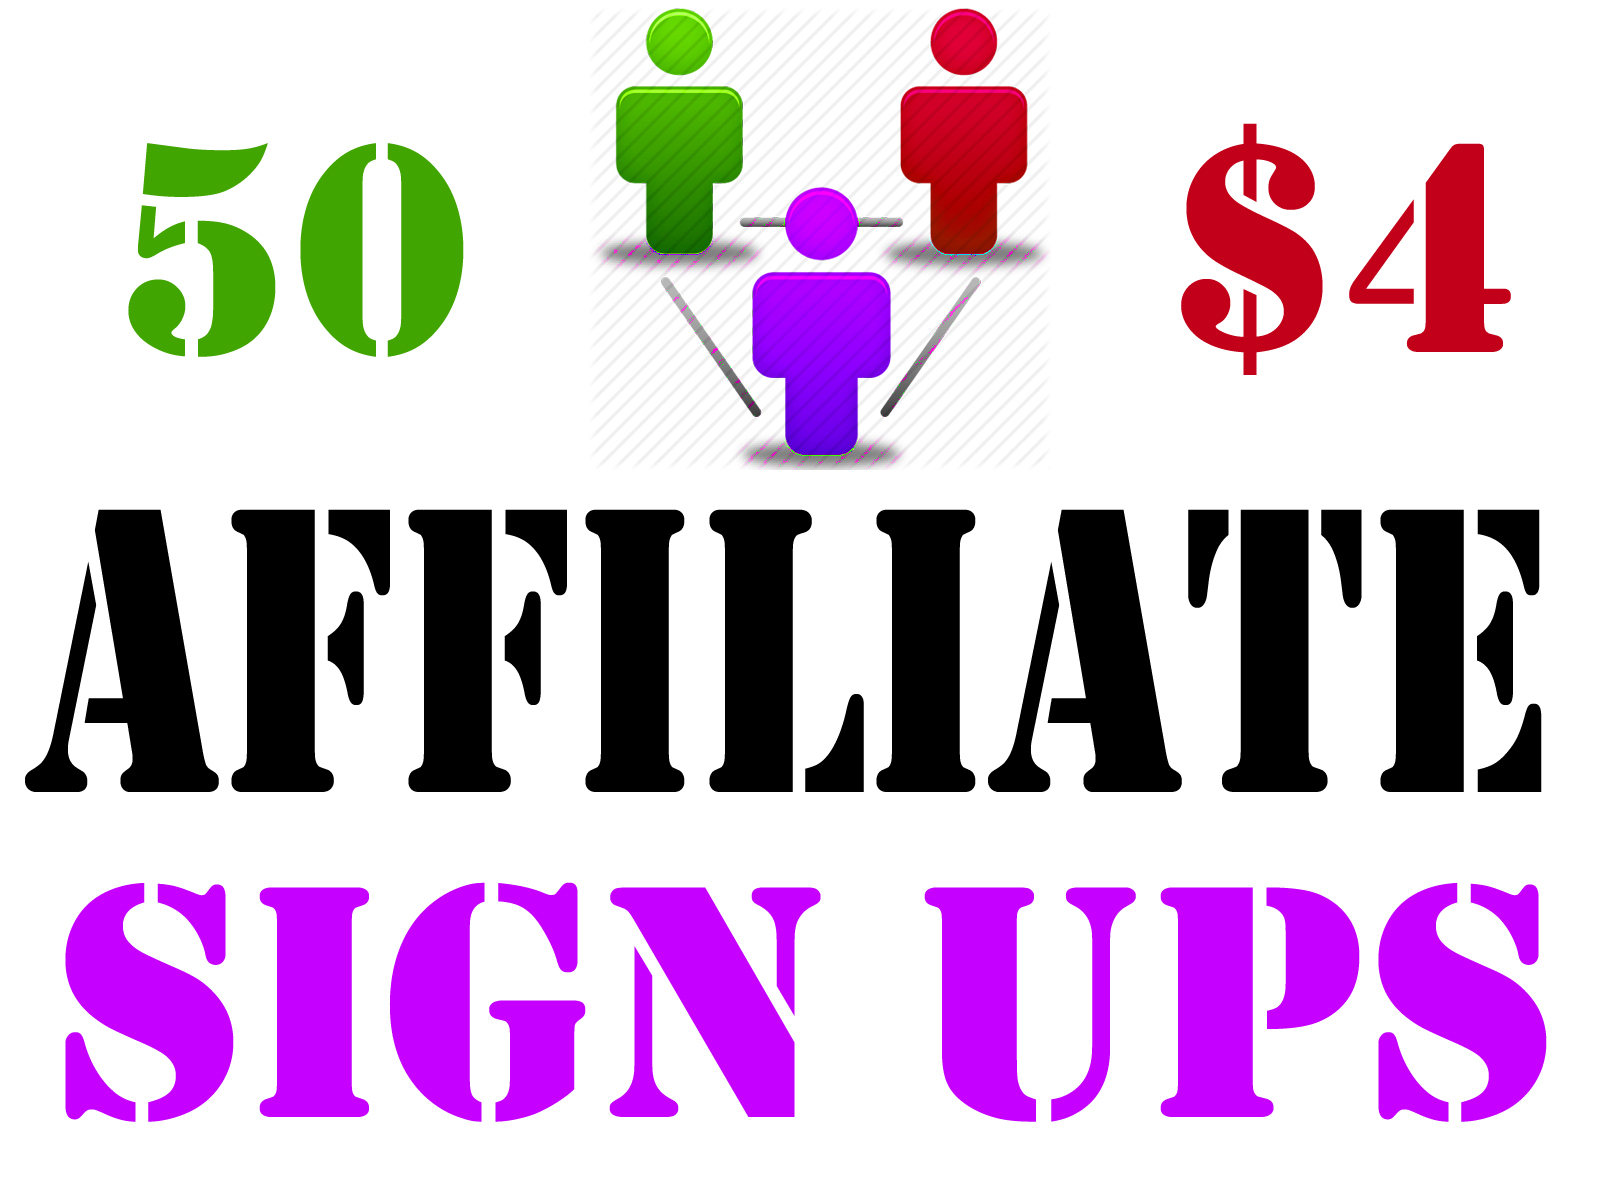 50 Affiliate Signups or Referral Signups